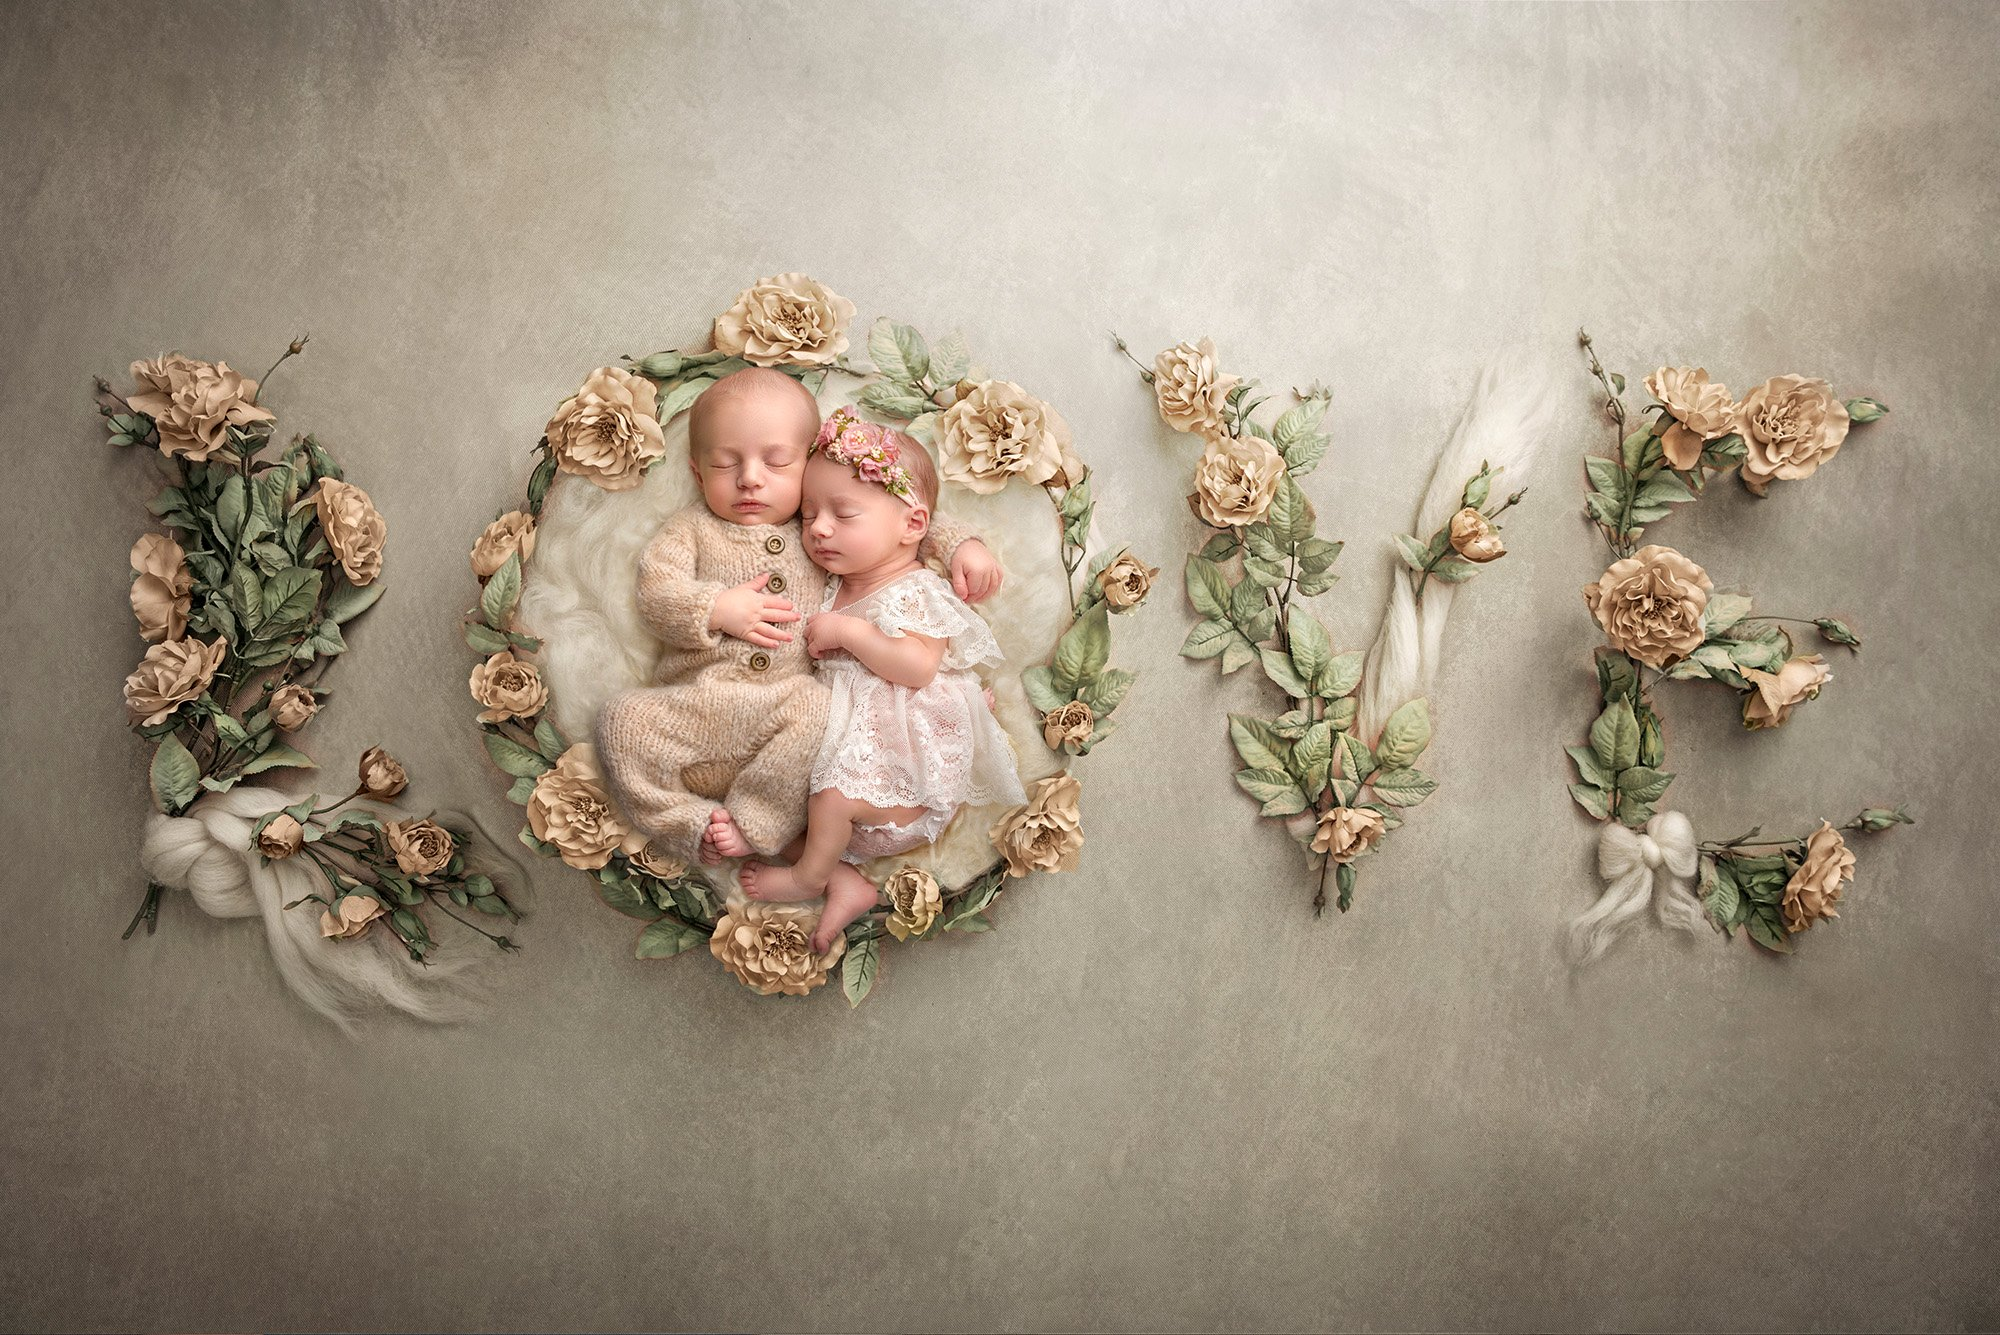 Twins newborn photography sweet newborn twins asleep on a grey background spelling out the word LOVE in flowers and bows